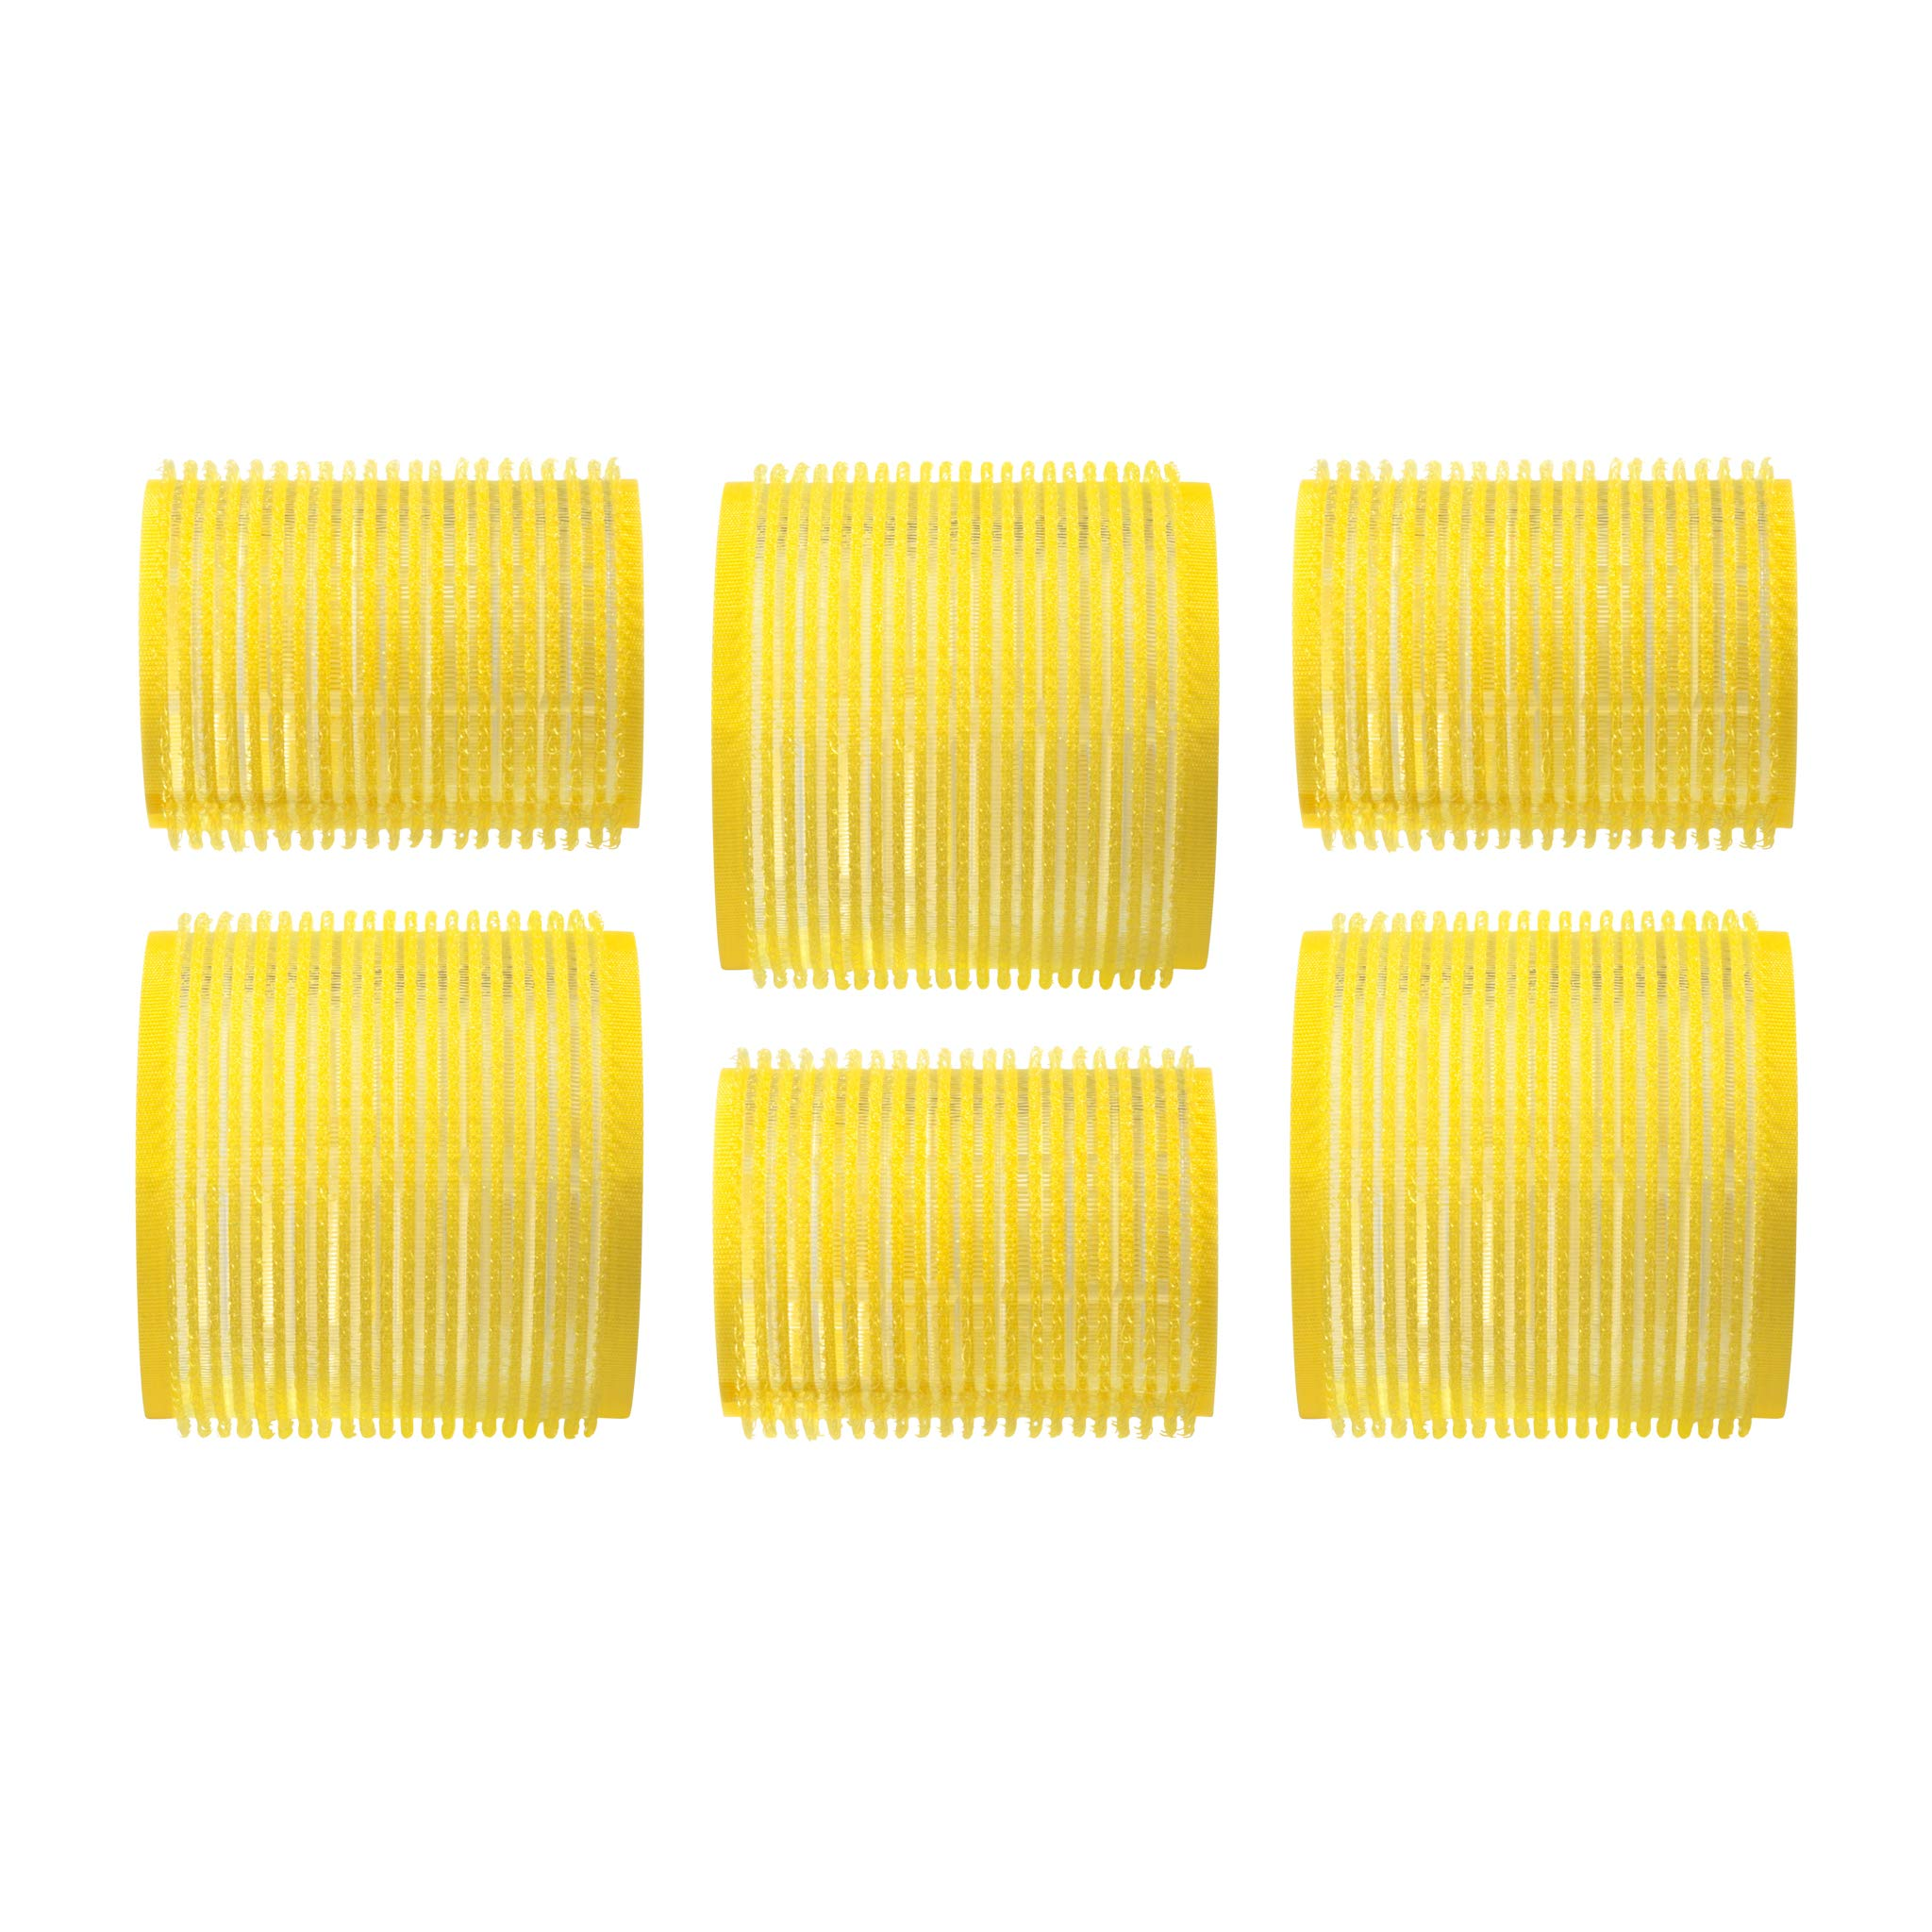 Drybar High Tops Self-Grip Rollers 6-Pack (3 Medium/3 Large)